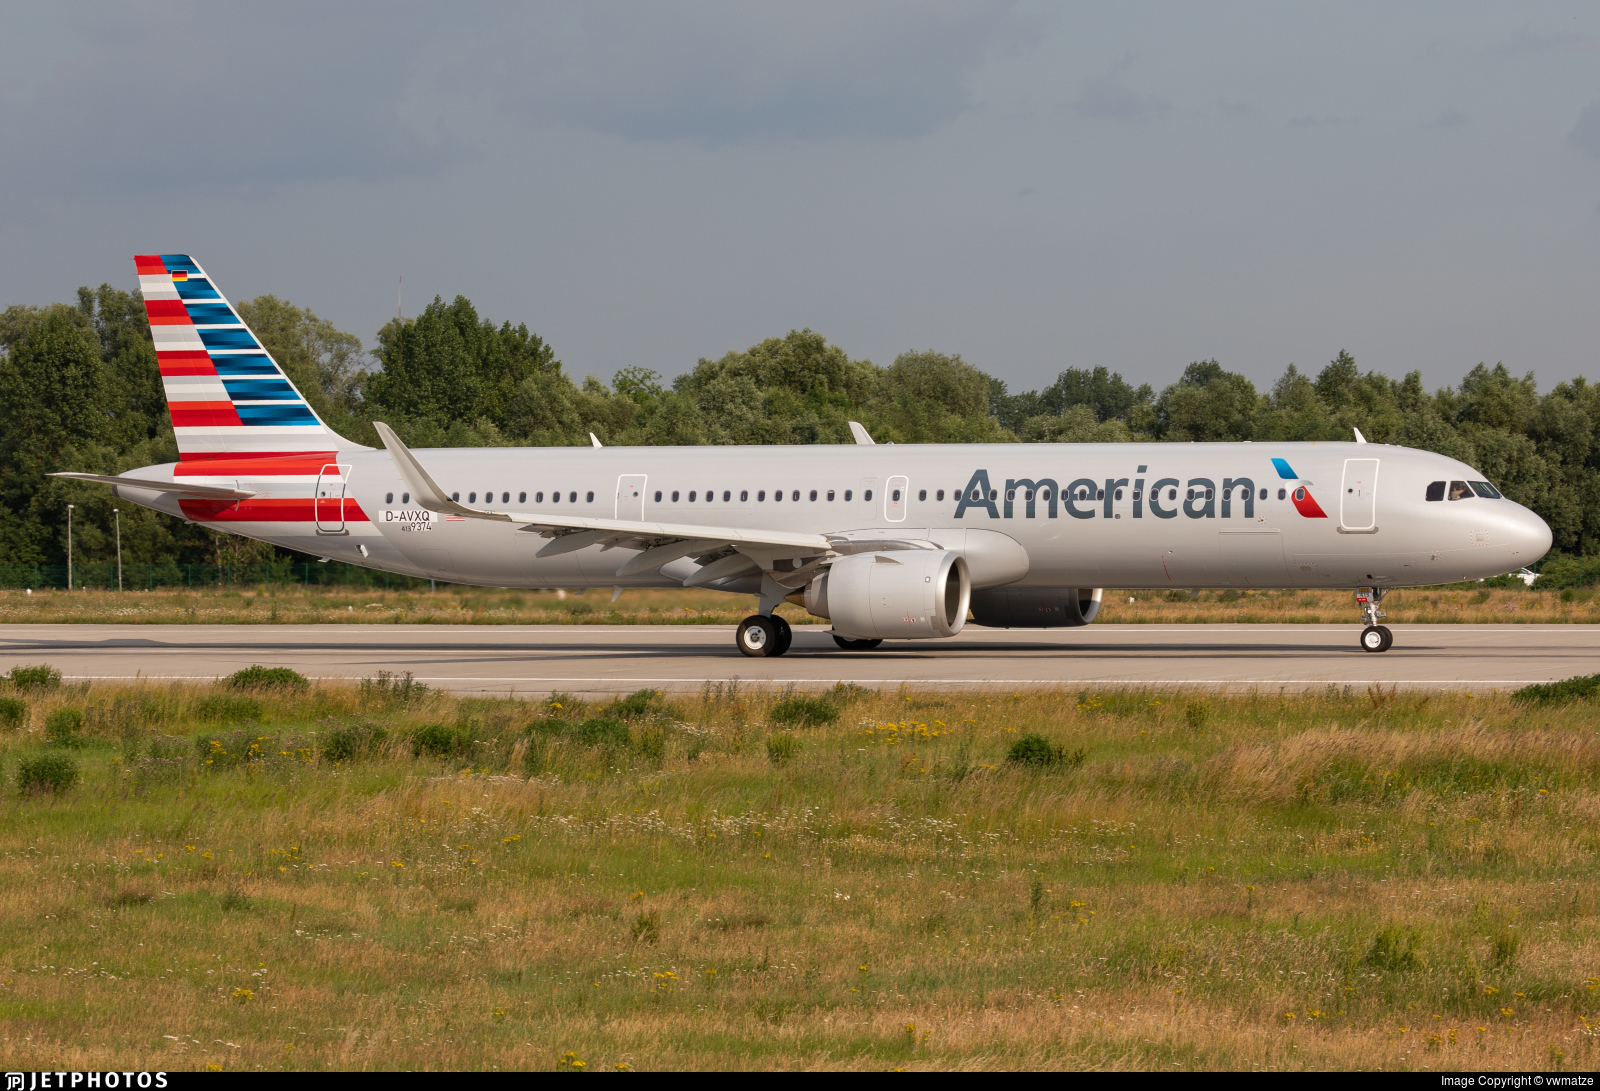 D-AVXQ - Airbus A321-253NX - American Airlines